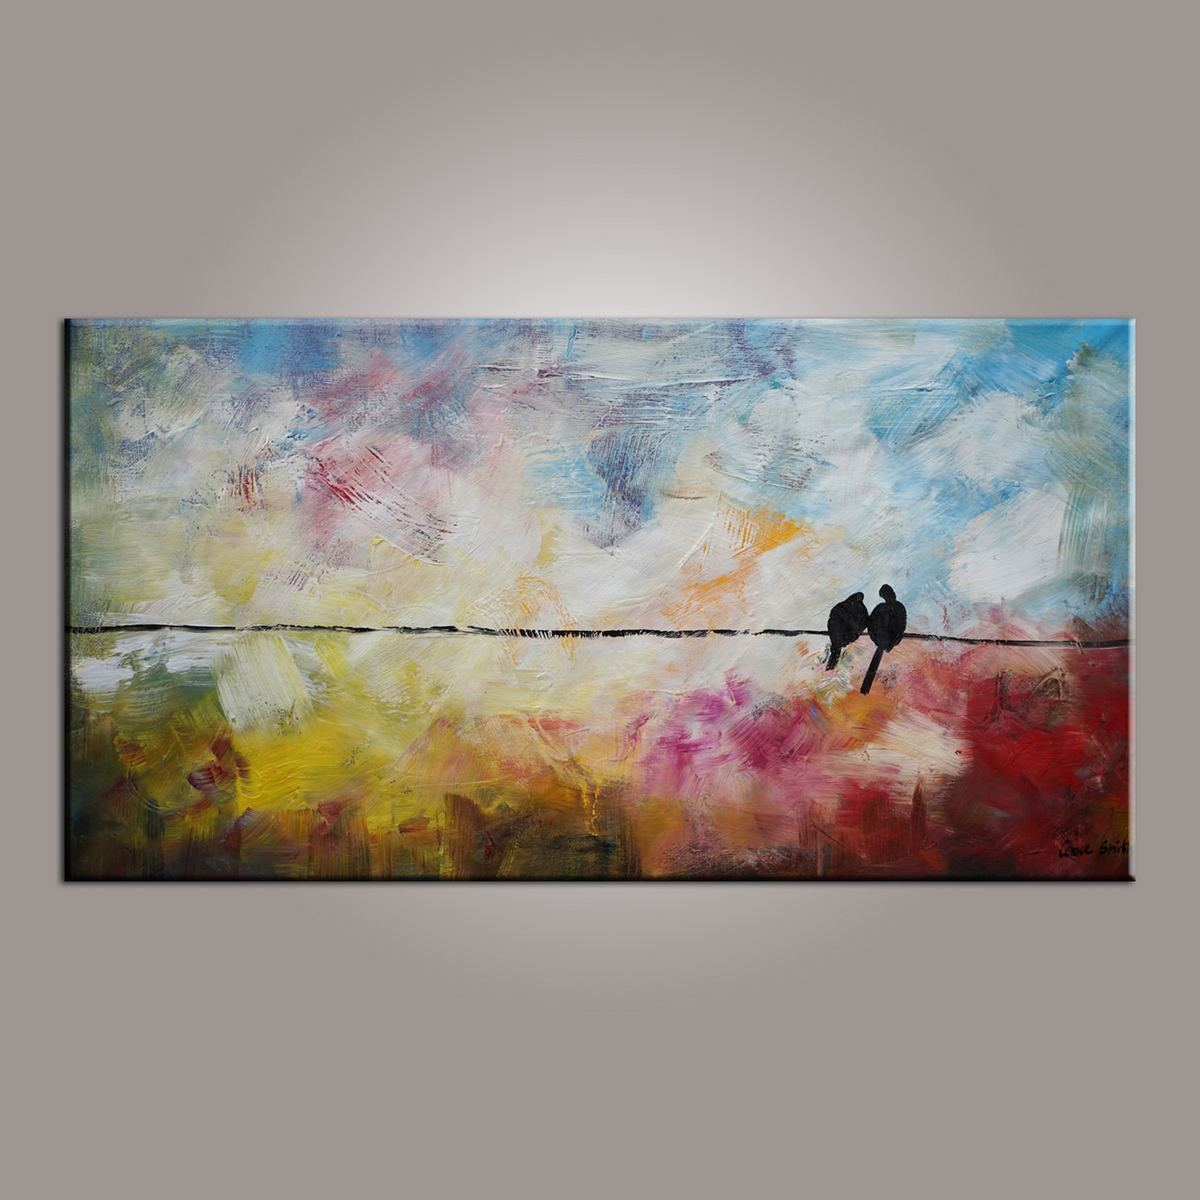 Painting for Sale, Modern Art, Abstract Art, Love Birds Painting, Contemporary Art, Flower Art, Abstract Art, Living Room Wall Art, Canvas Art-Paintingforhome